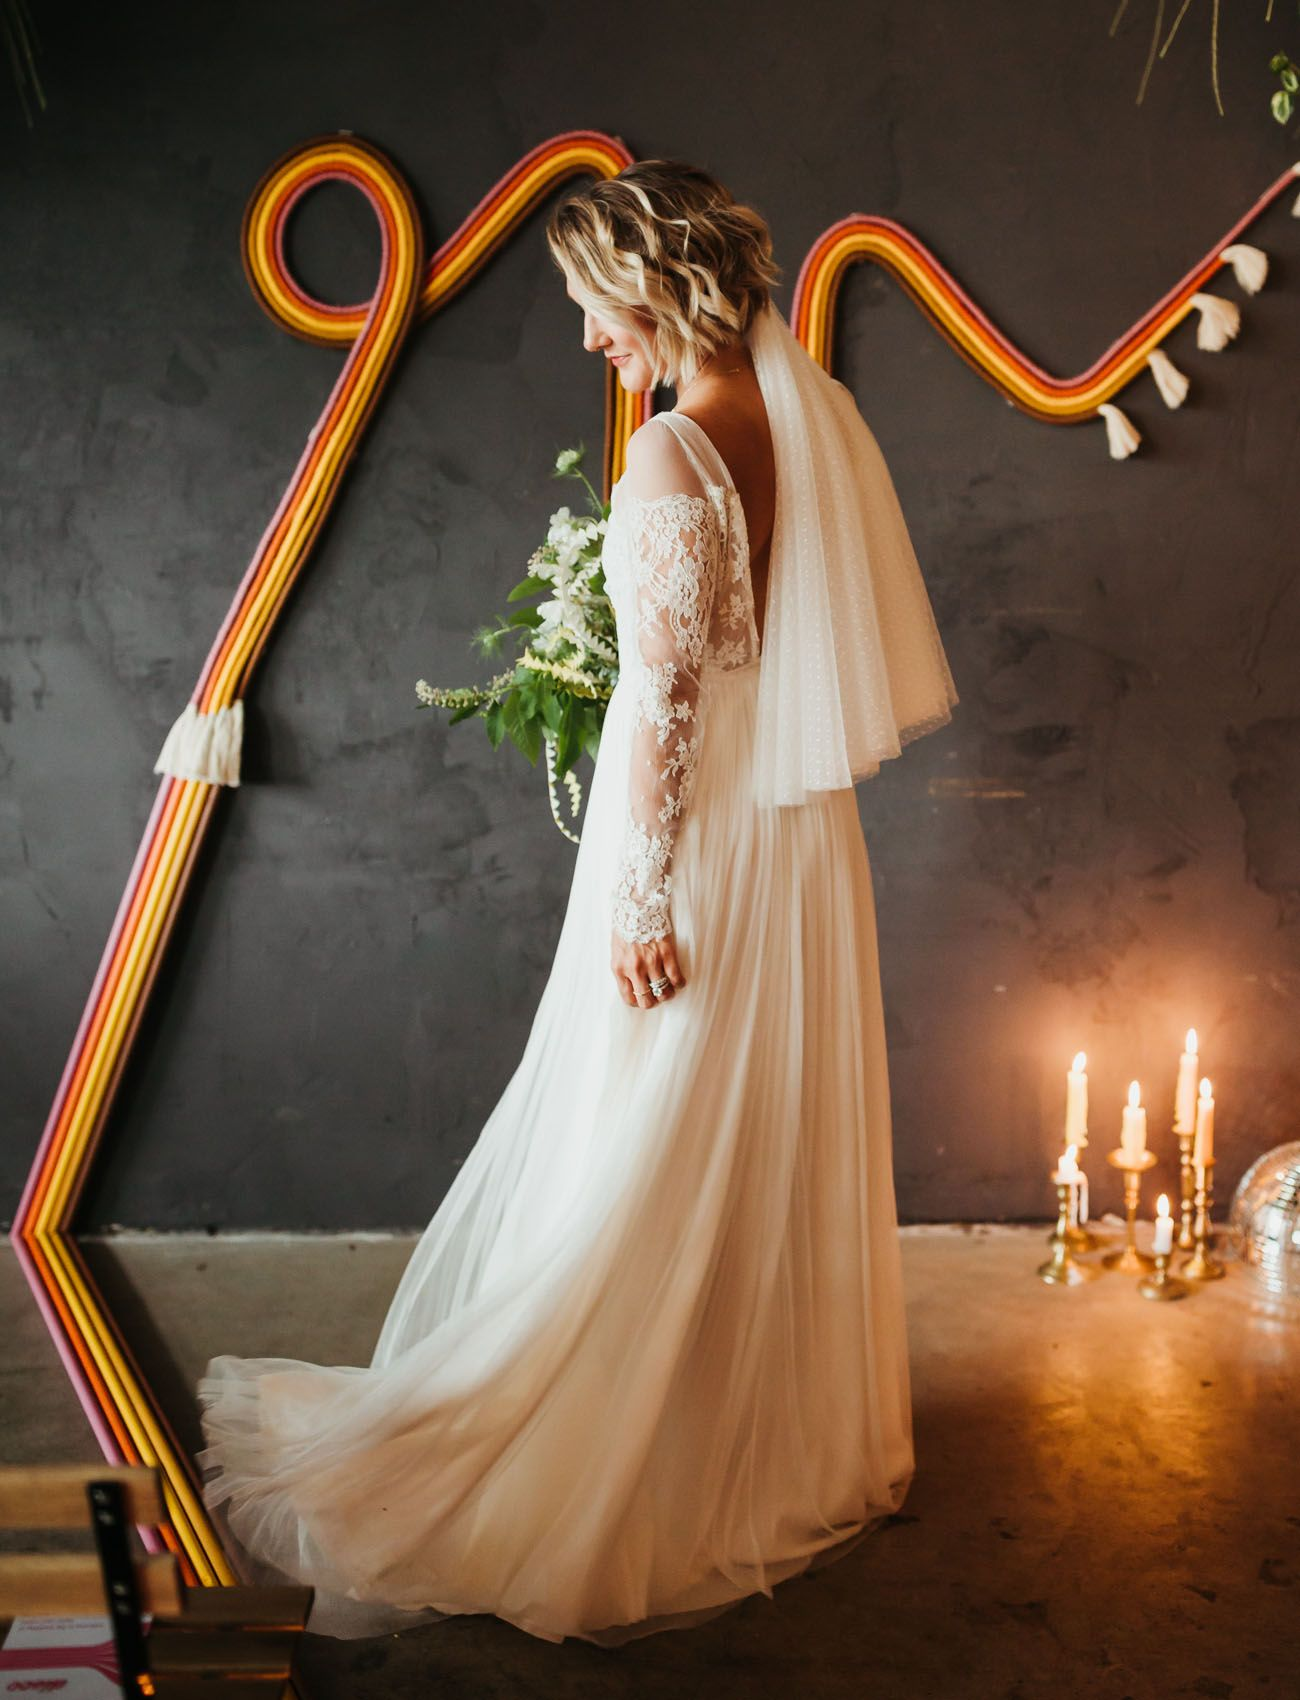 Sinspired boho wedding with a retro color palette wedding dress